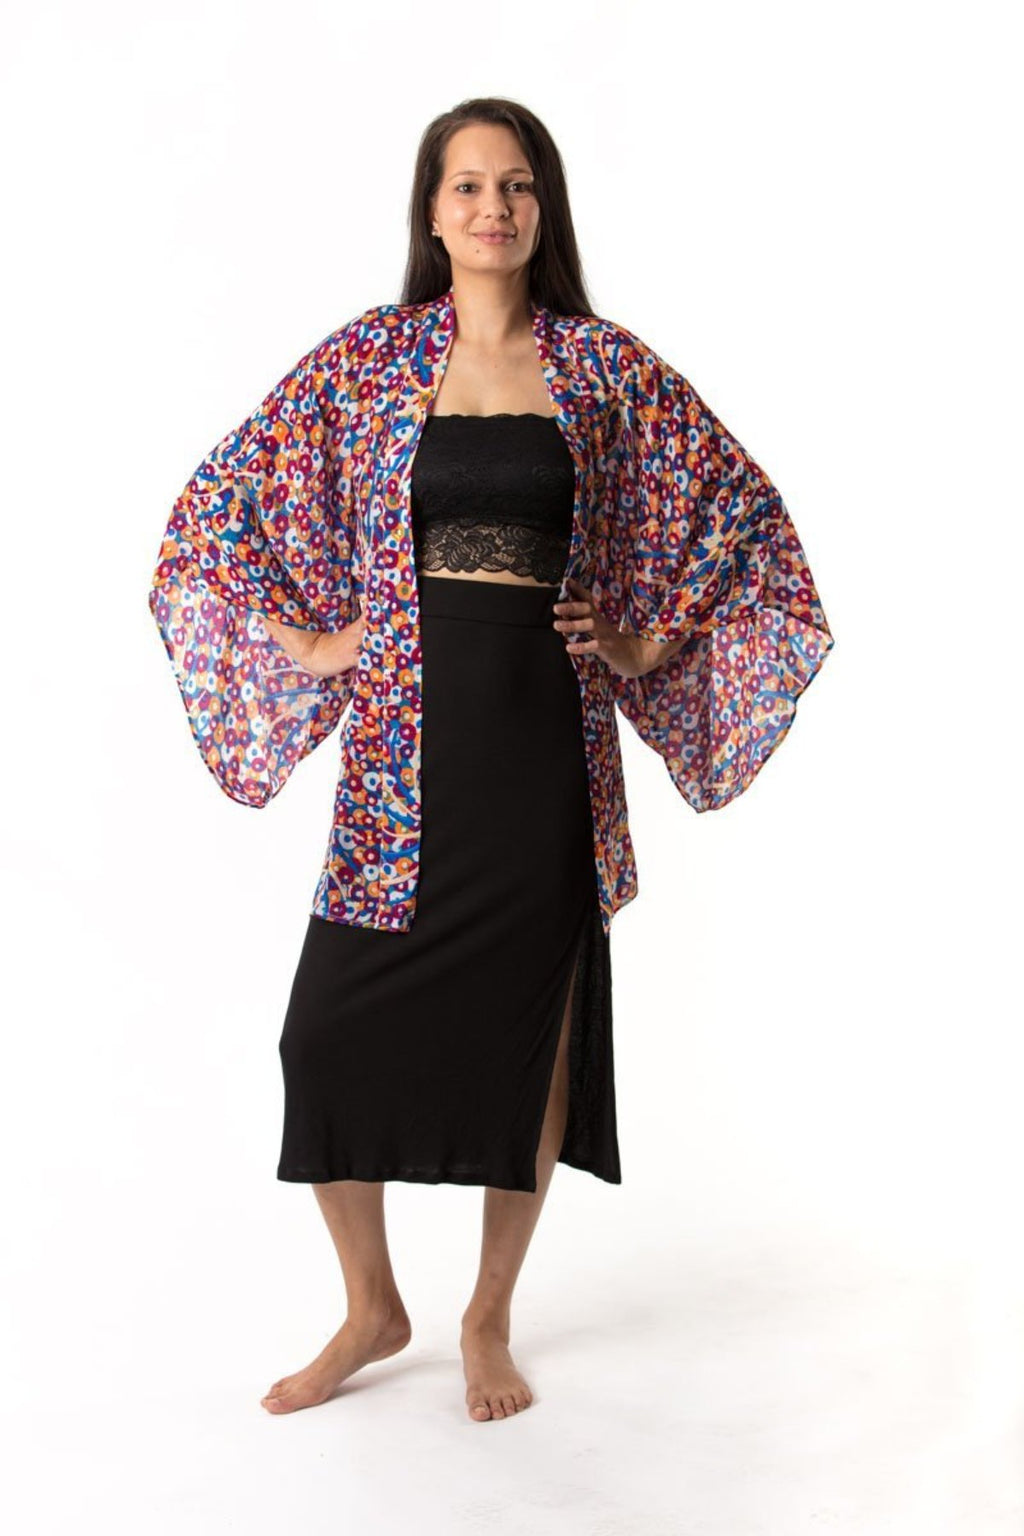 Kerry Kimono Short Jackets Ethical Sustainable Vegan Organic Australian fashion womens clothes